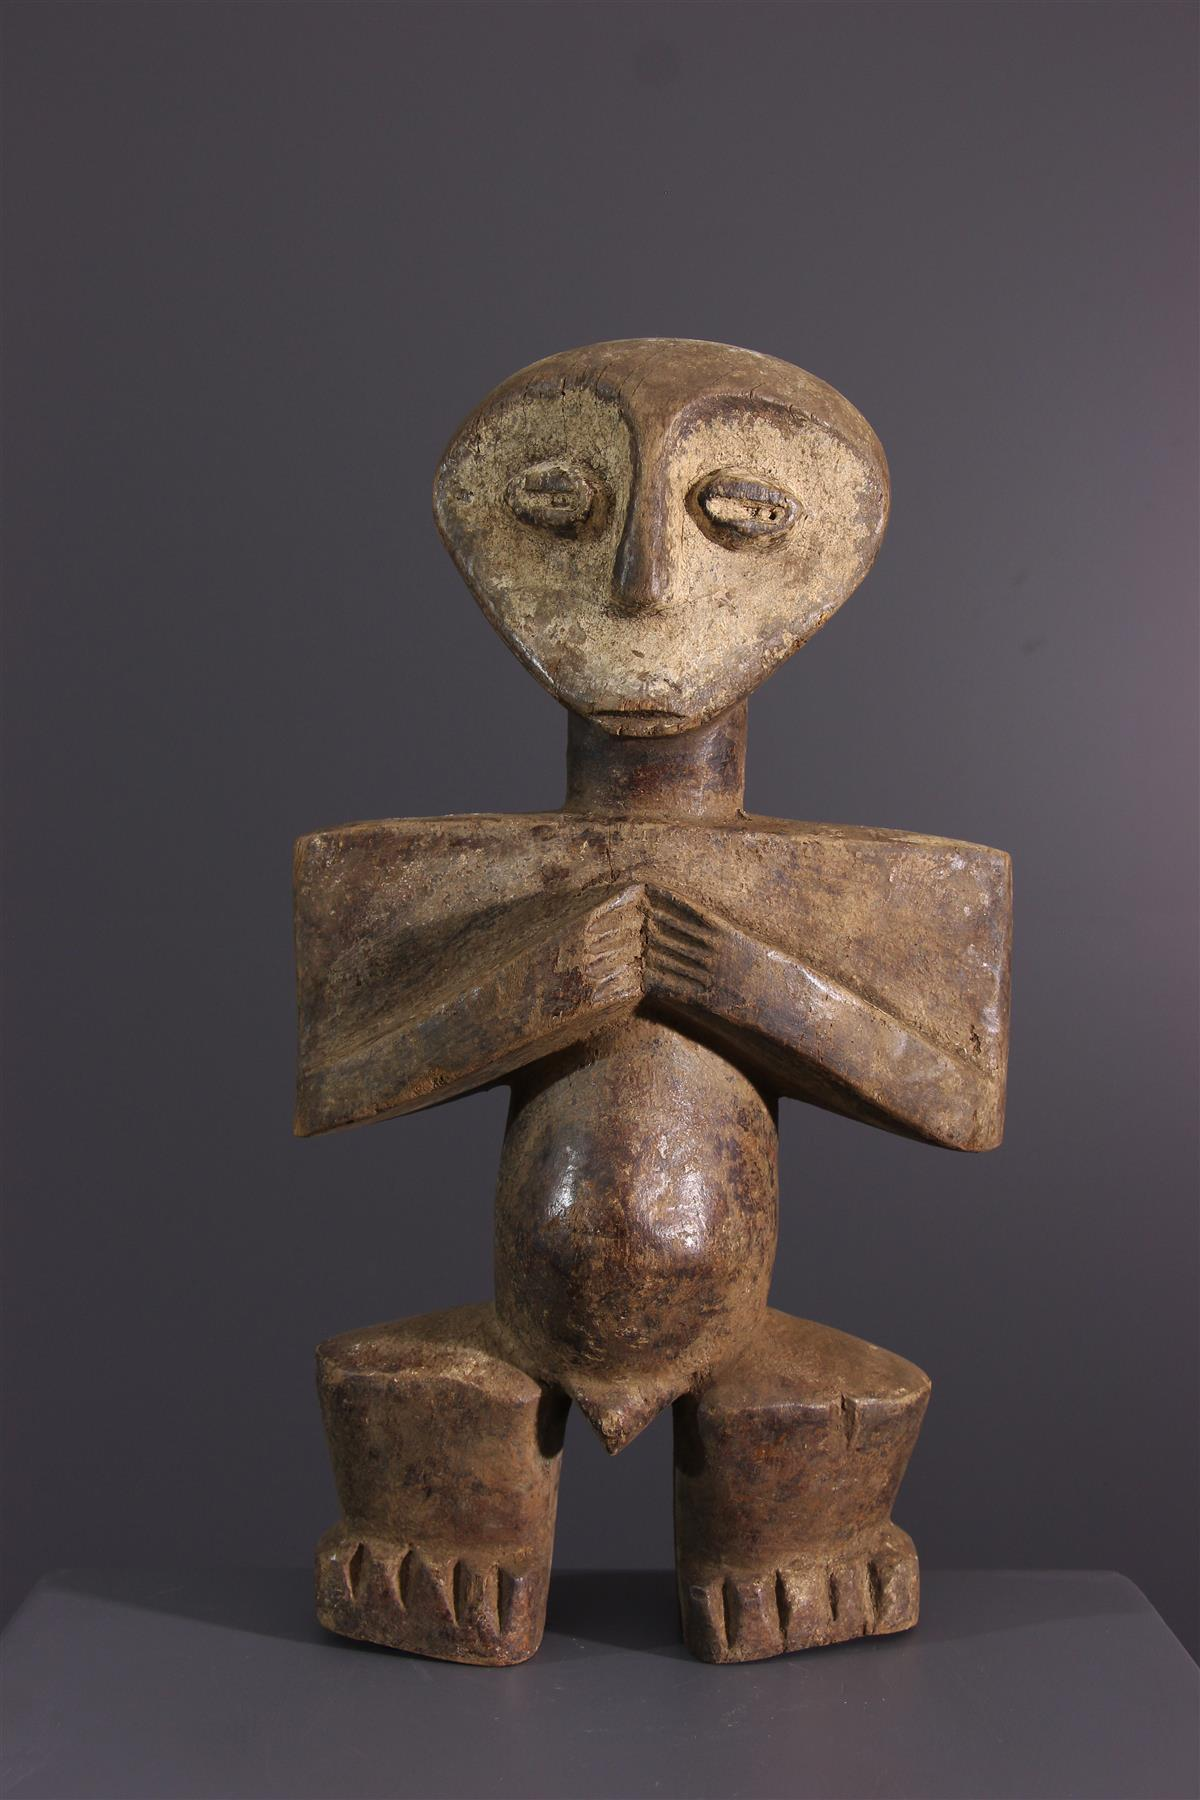 League figurines - African art